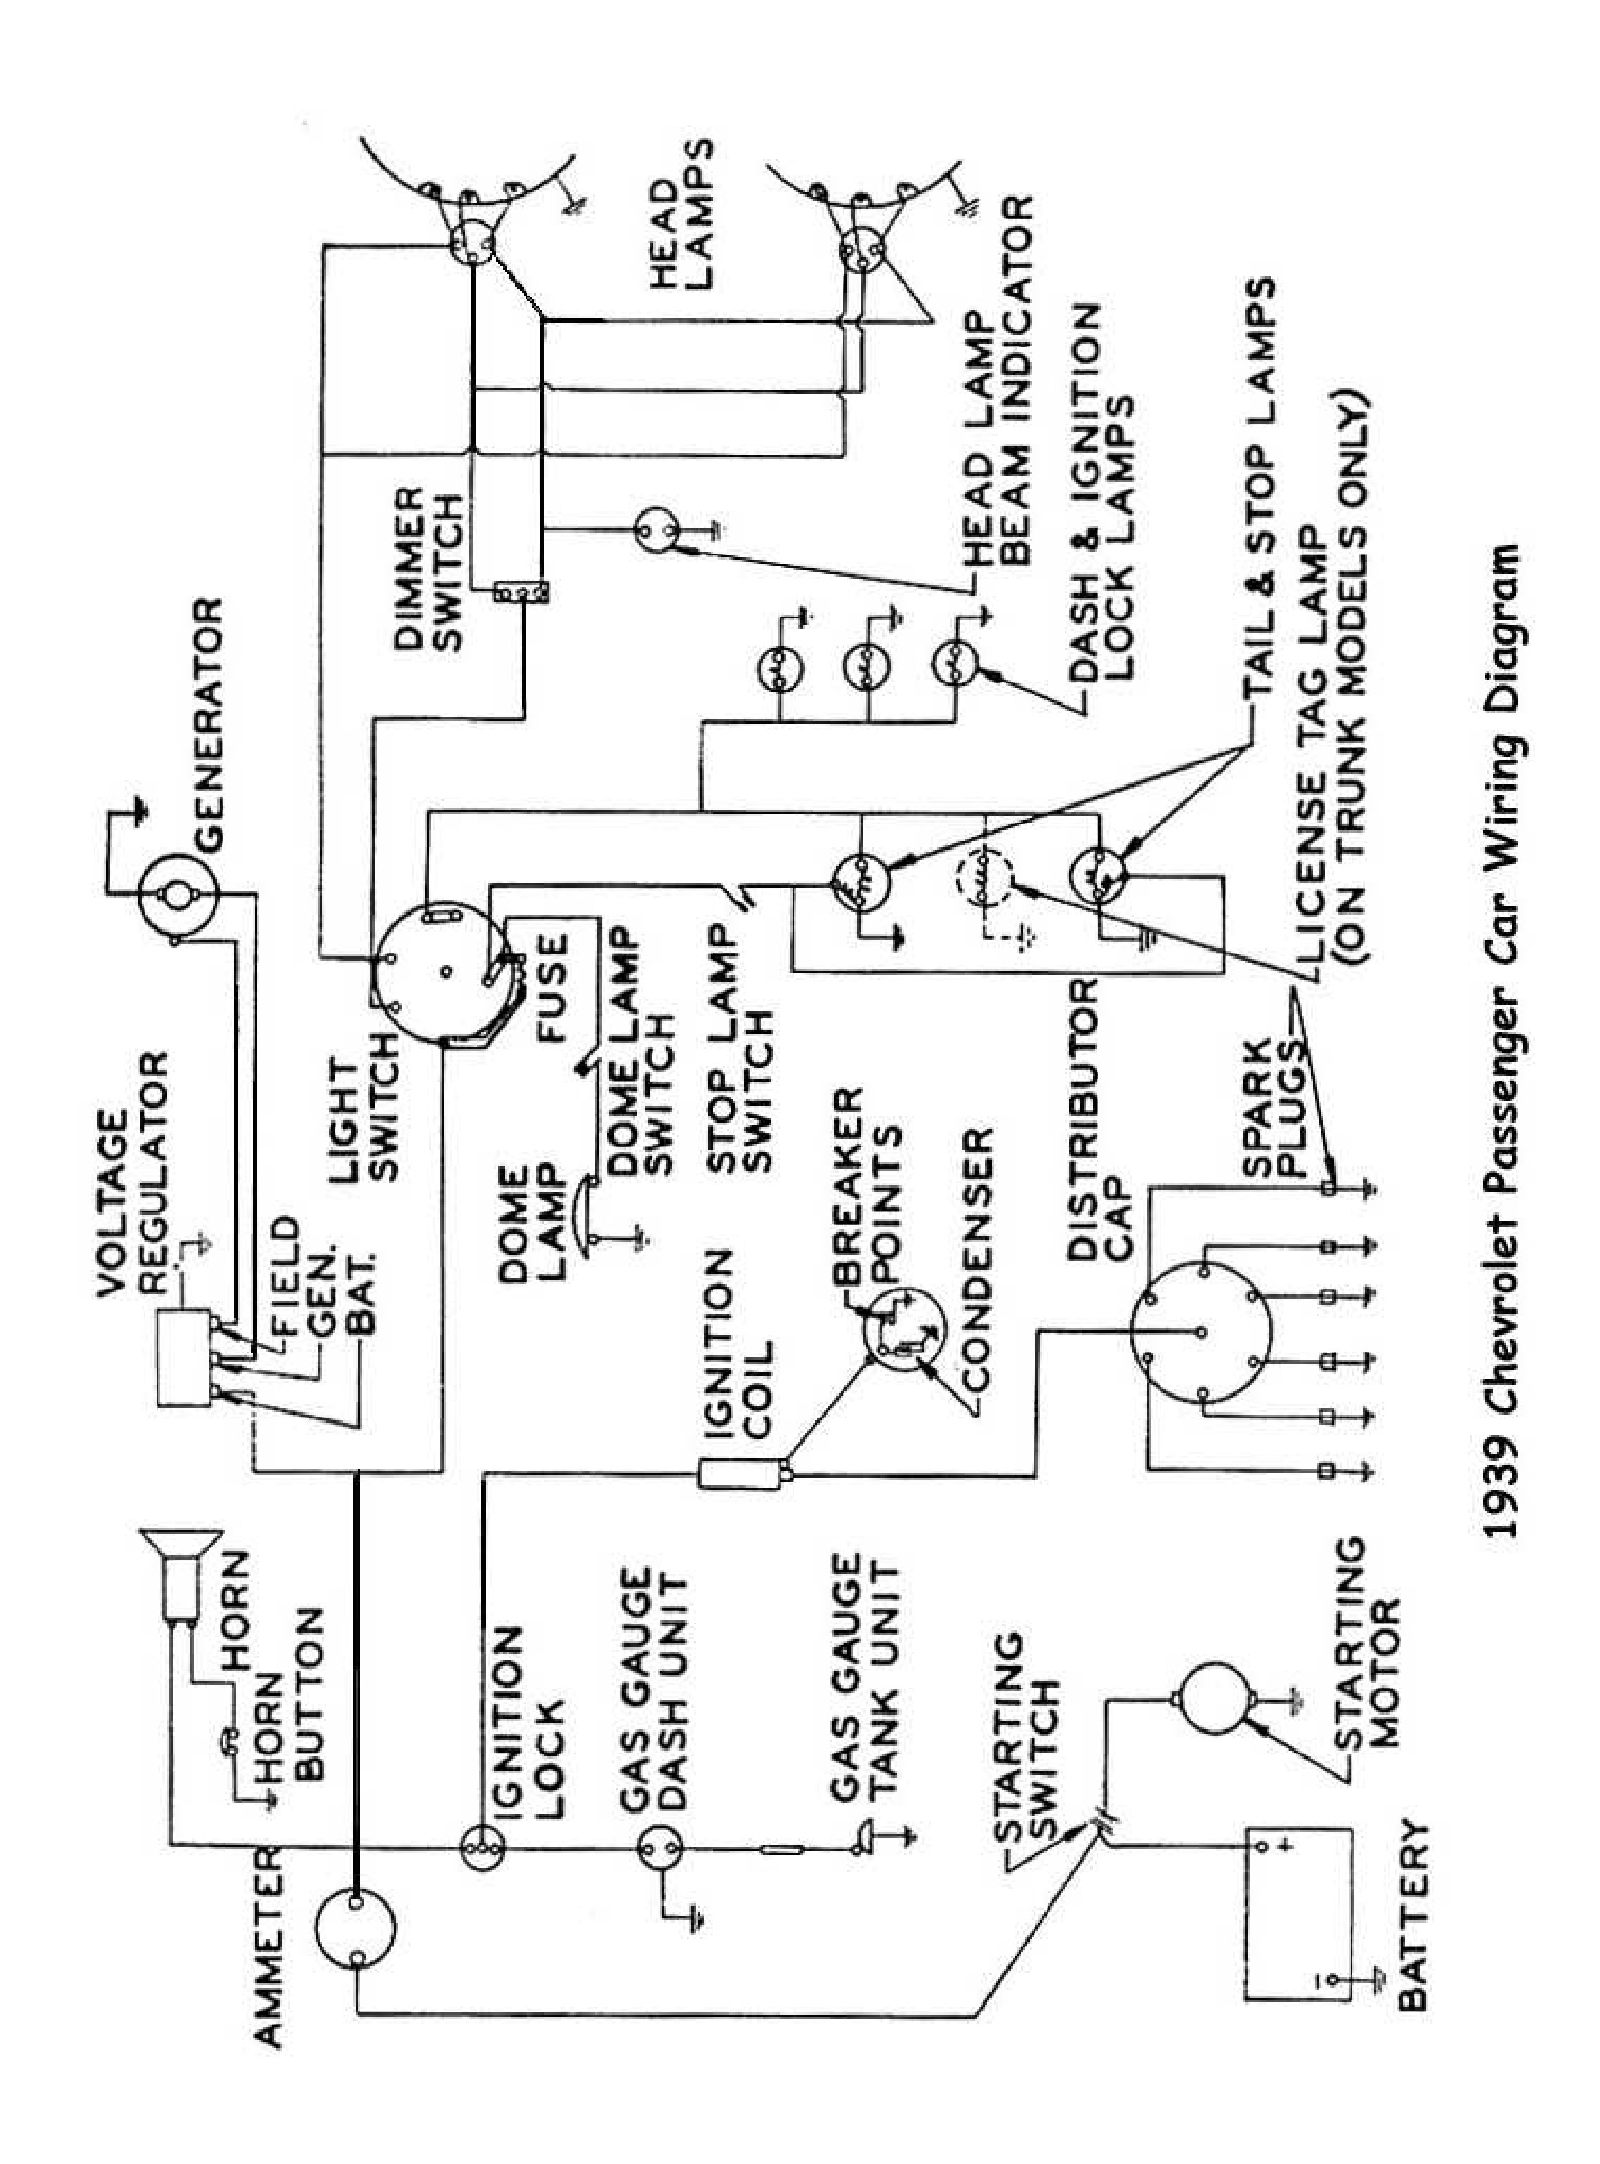 39car chevy wiring diagrams Basic Engine Wiring Diagram Chevy at suagrazia.org